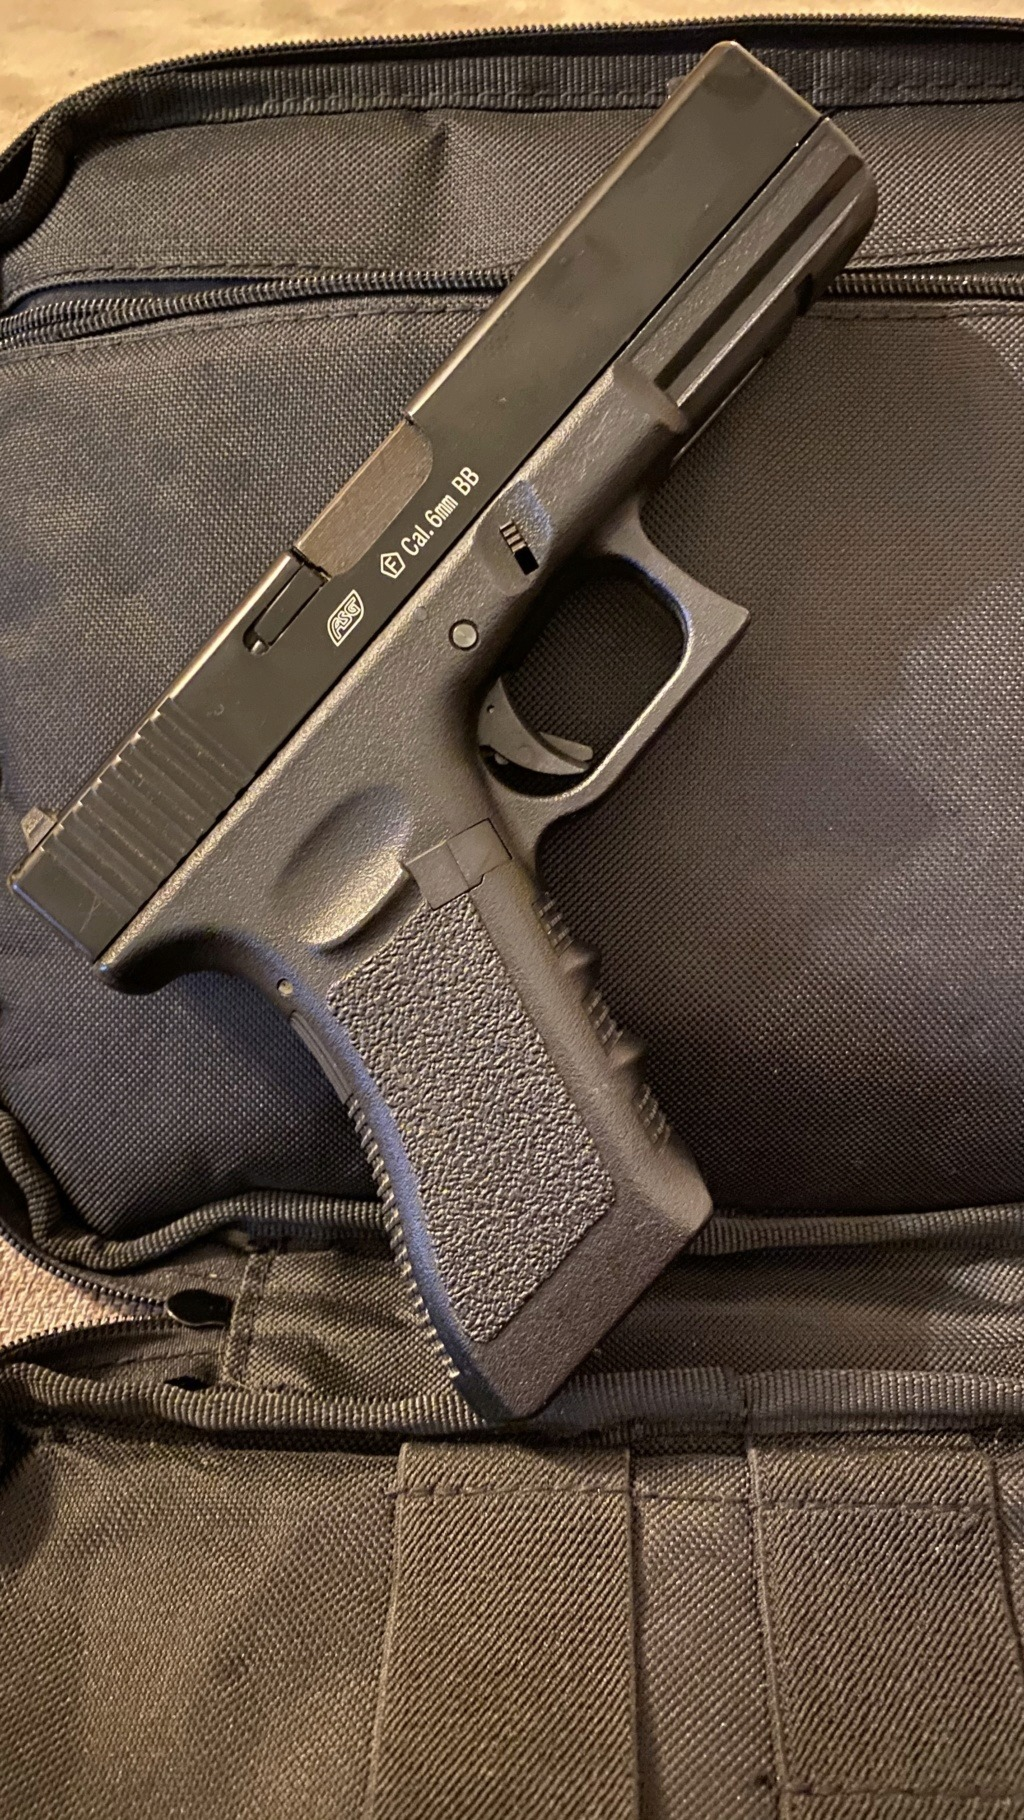 GBB G18 full auto Blowback  871fc610